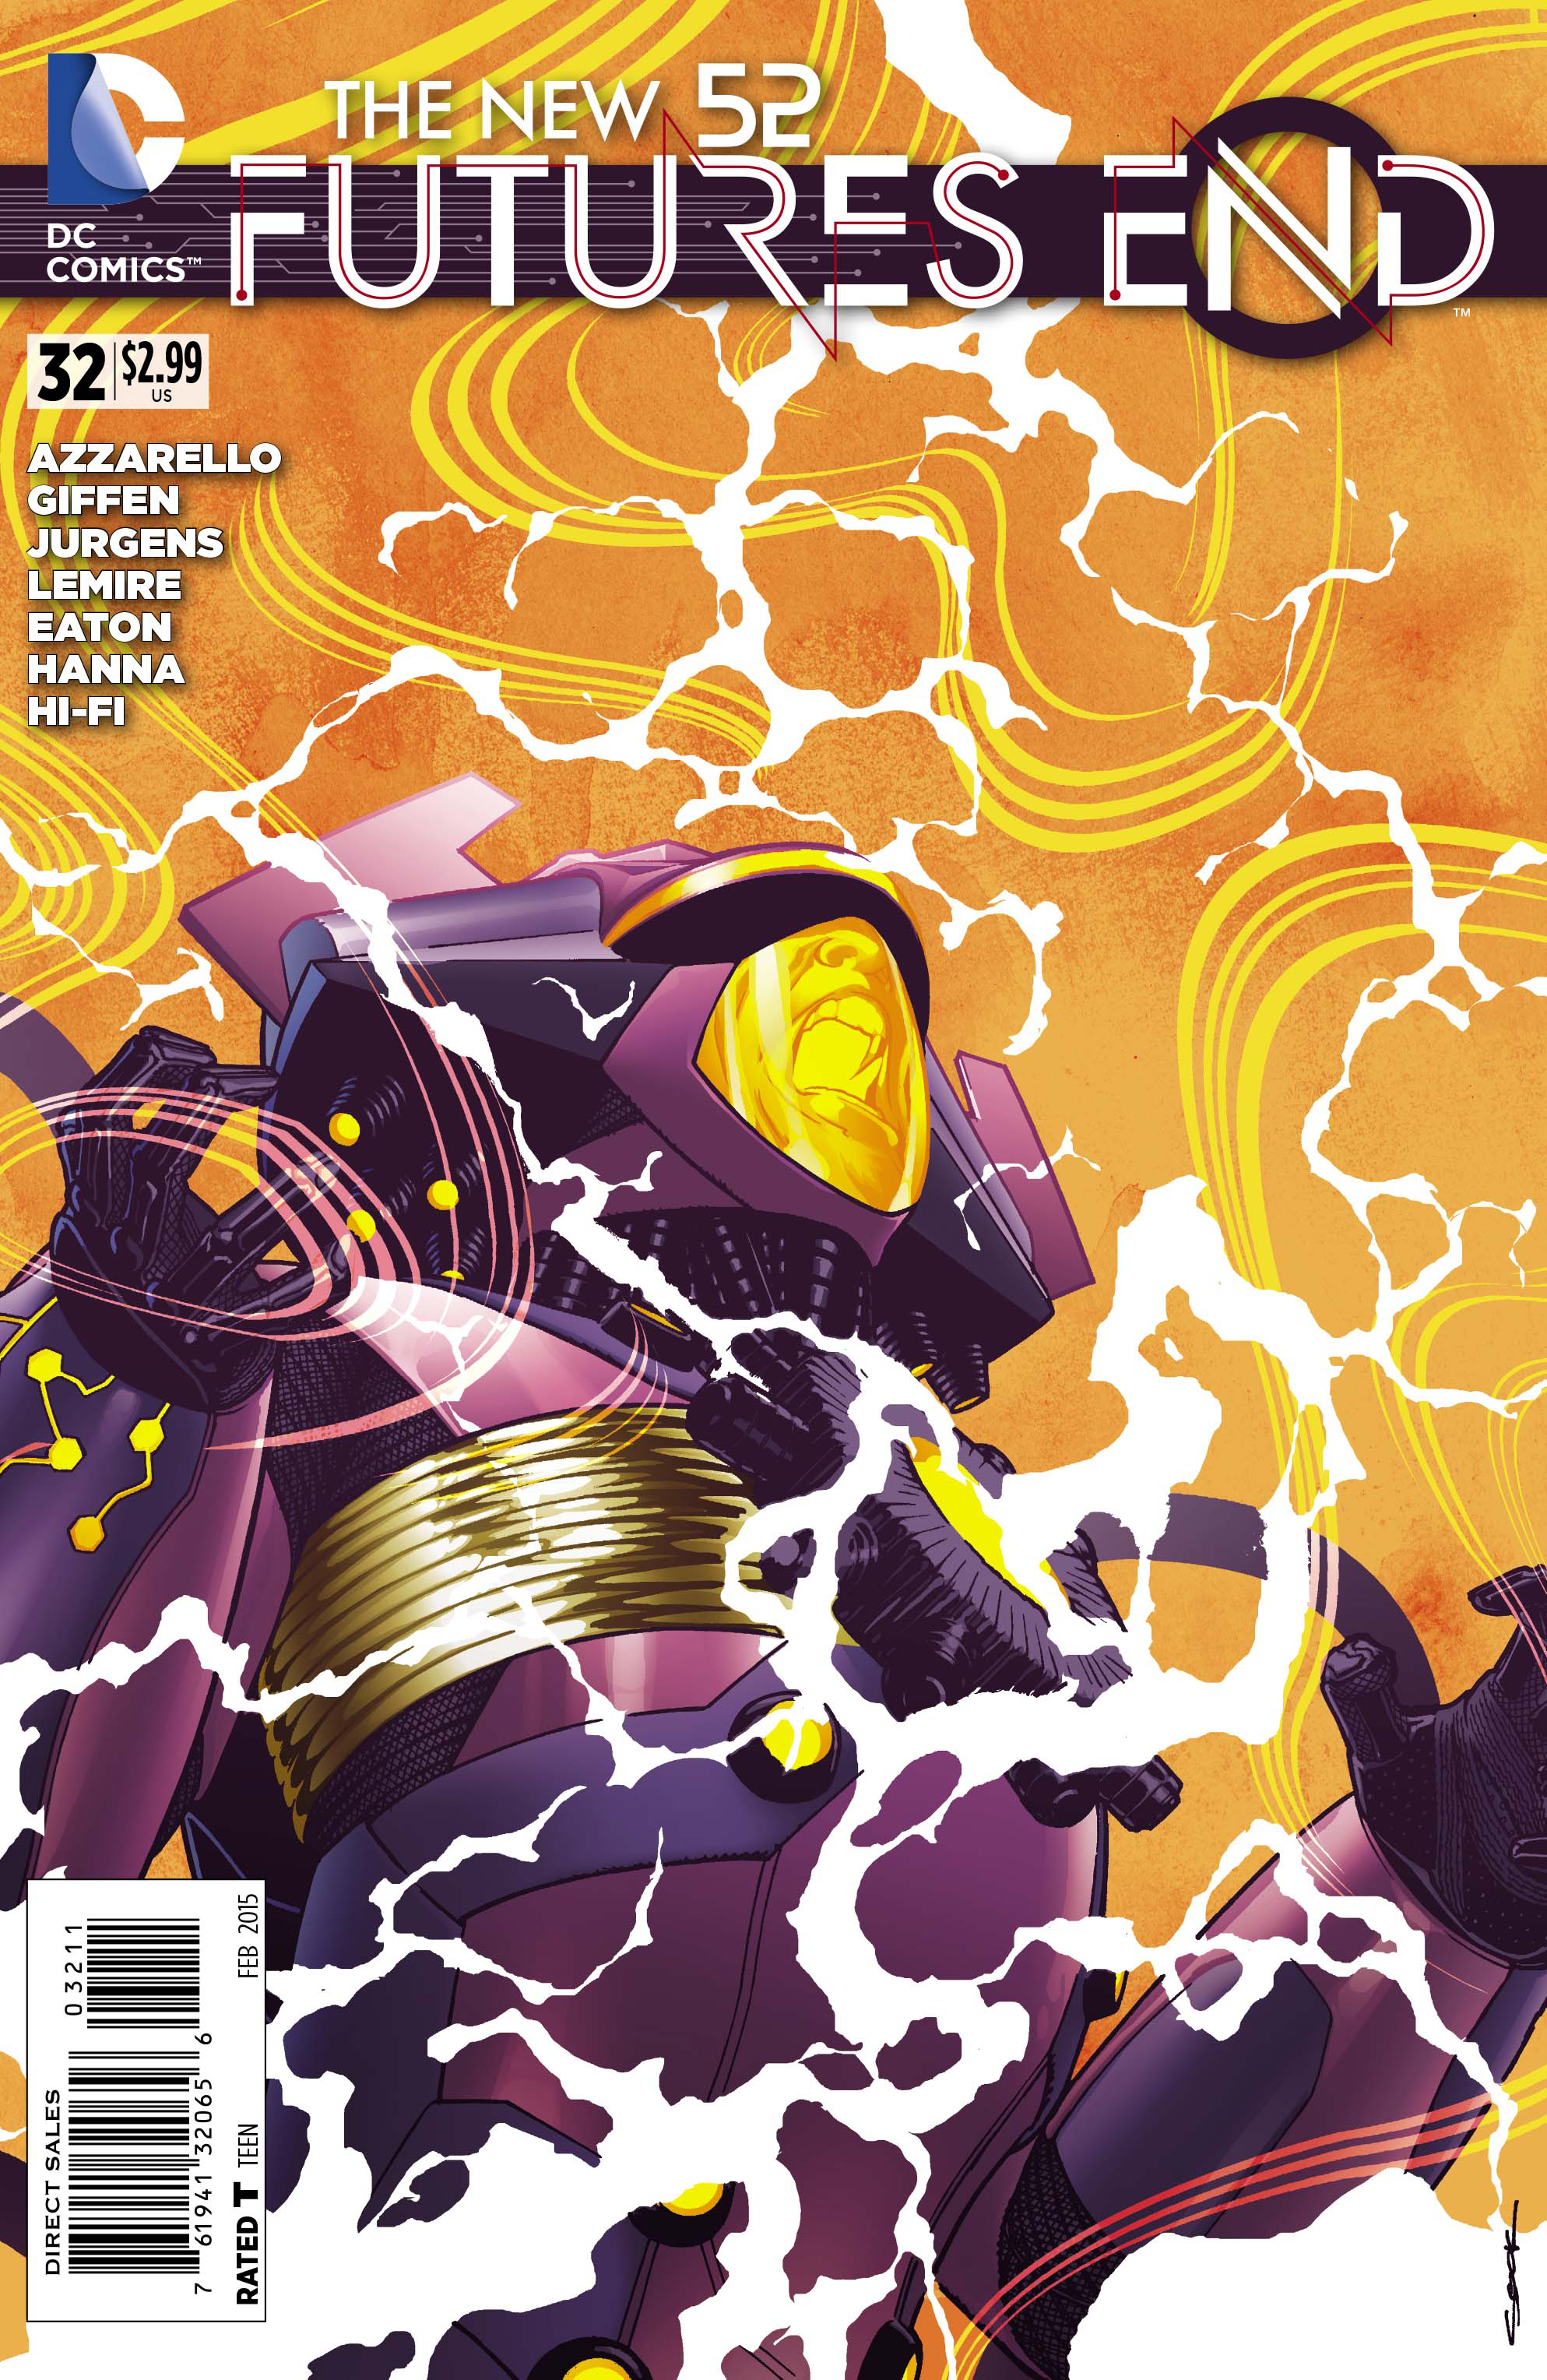 NEW 52 FUTURES END #32